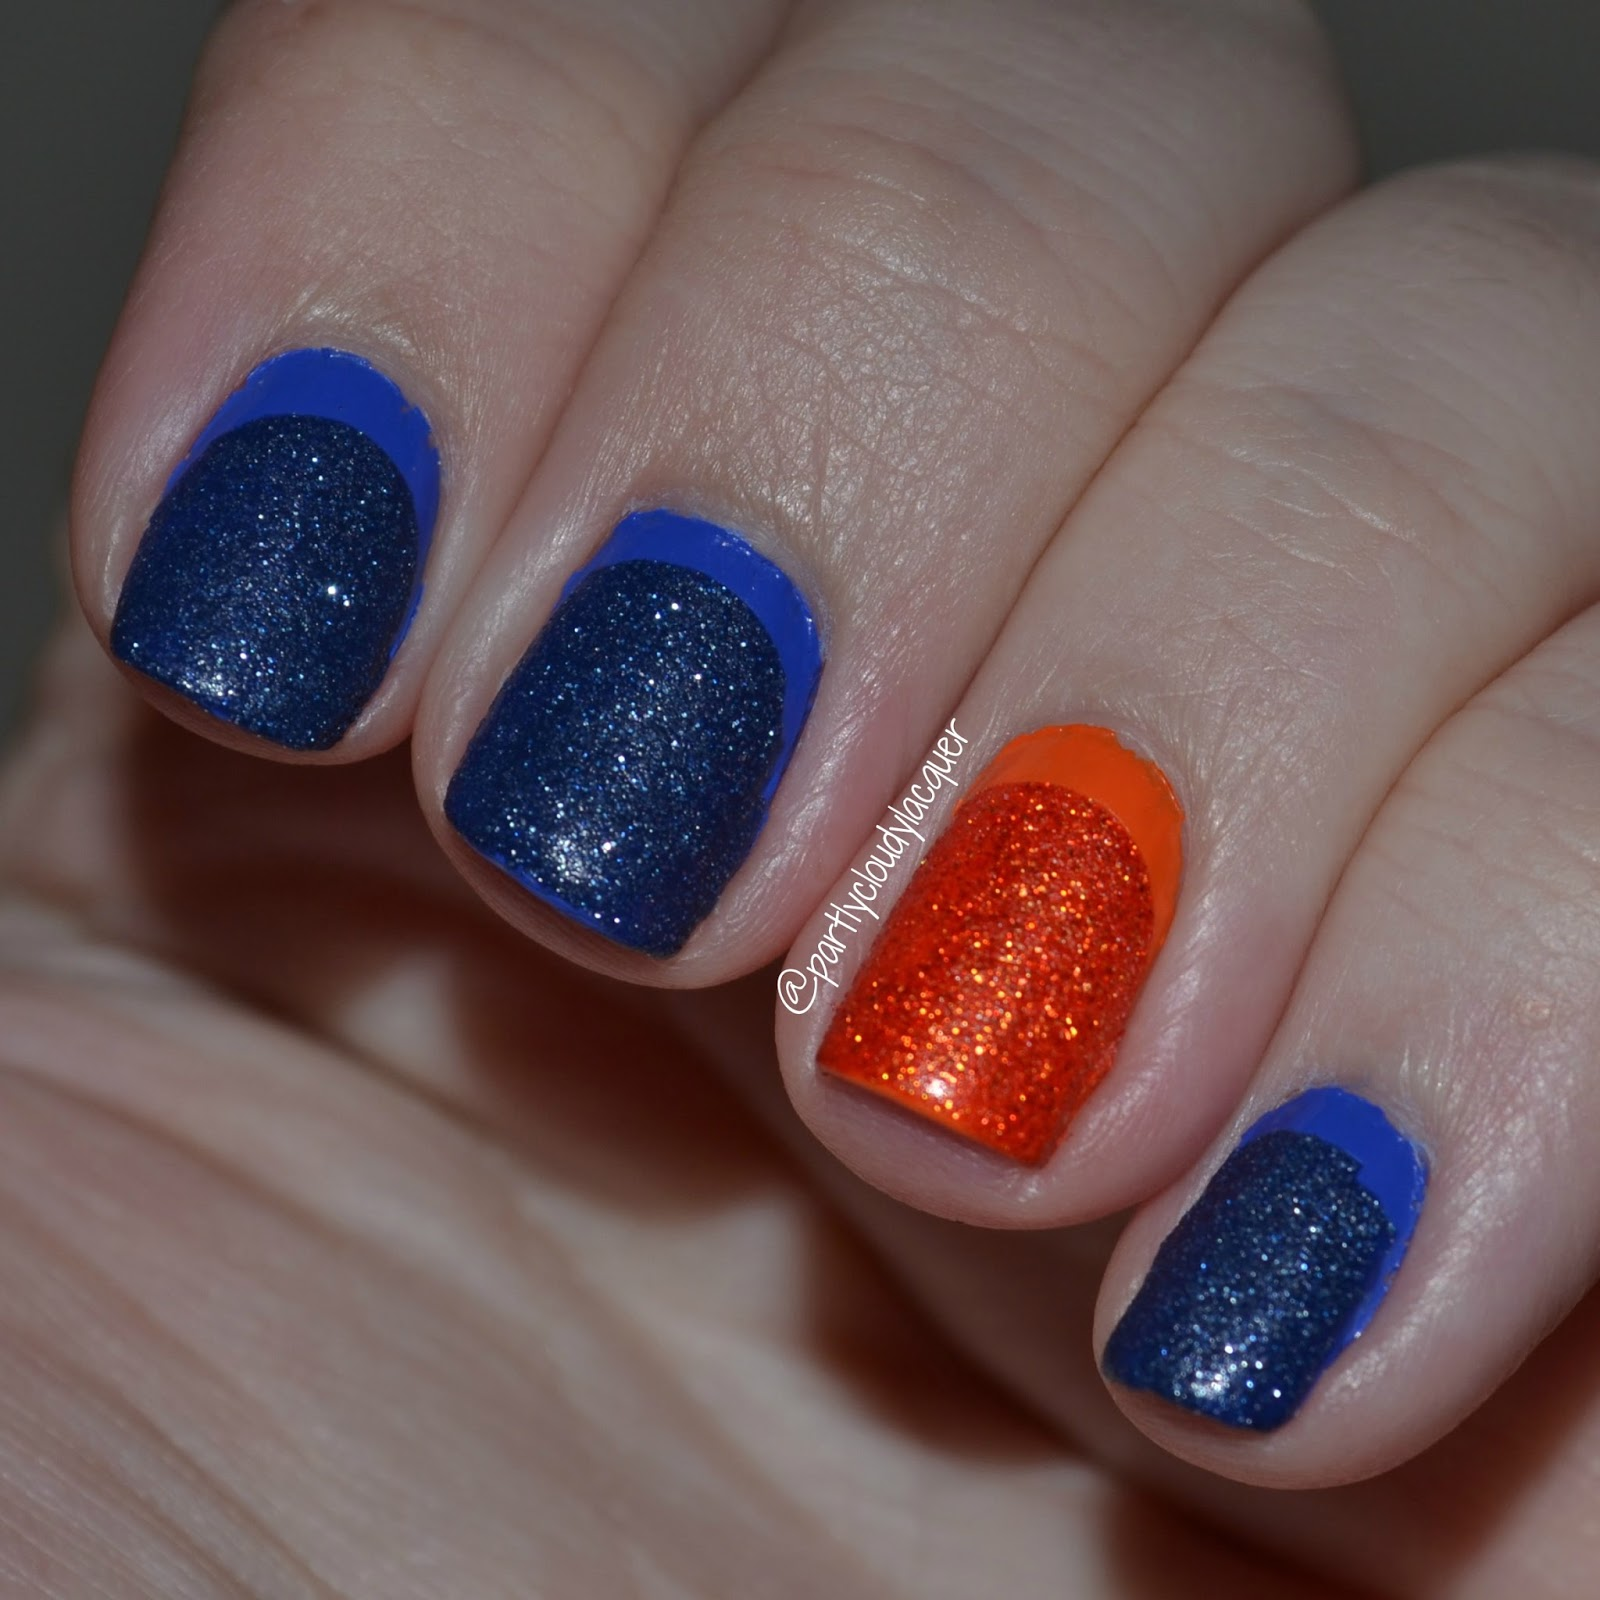 Twinsie Tuesday - Florida Gator Ruffian Nails | Partly Cloudy With a ...